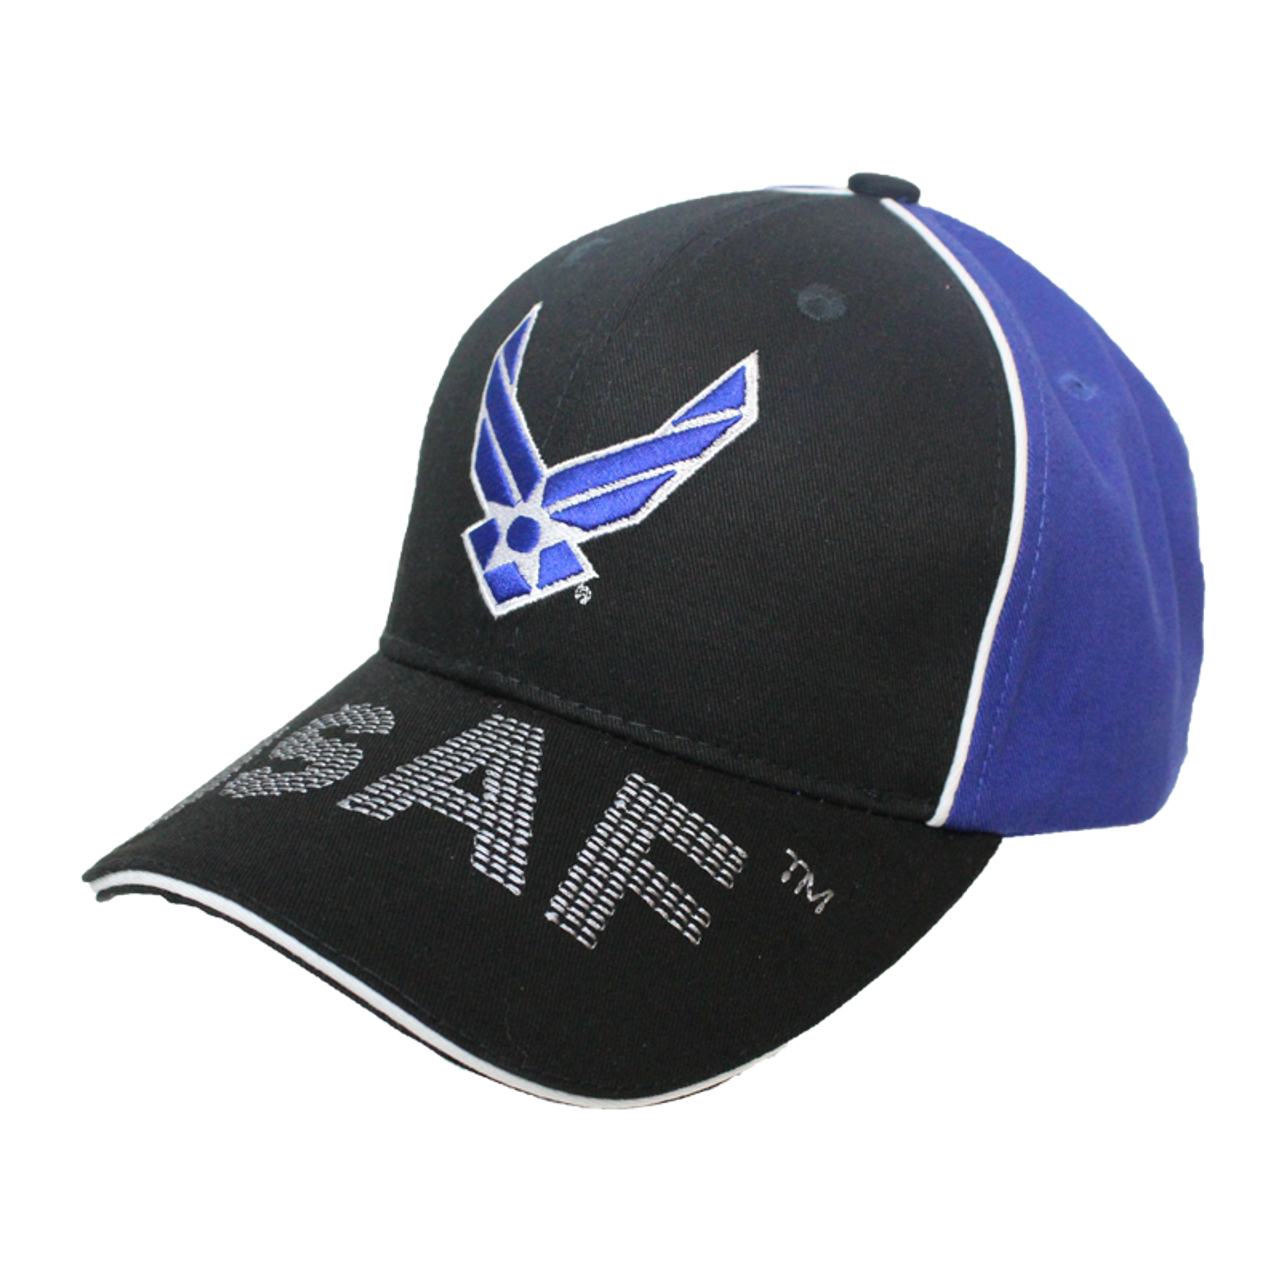 2daa2d64d79 ... 34936 - Piped Embroidered U.S. Air Force Wings Cap Sandwich Bill - Black Blue  ...